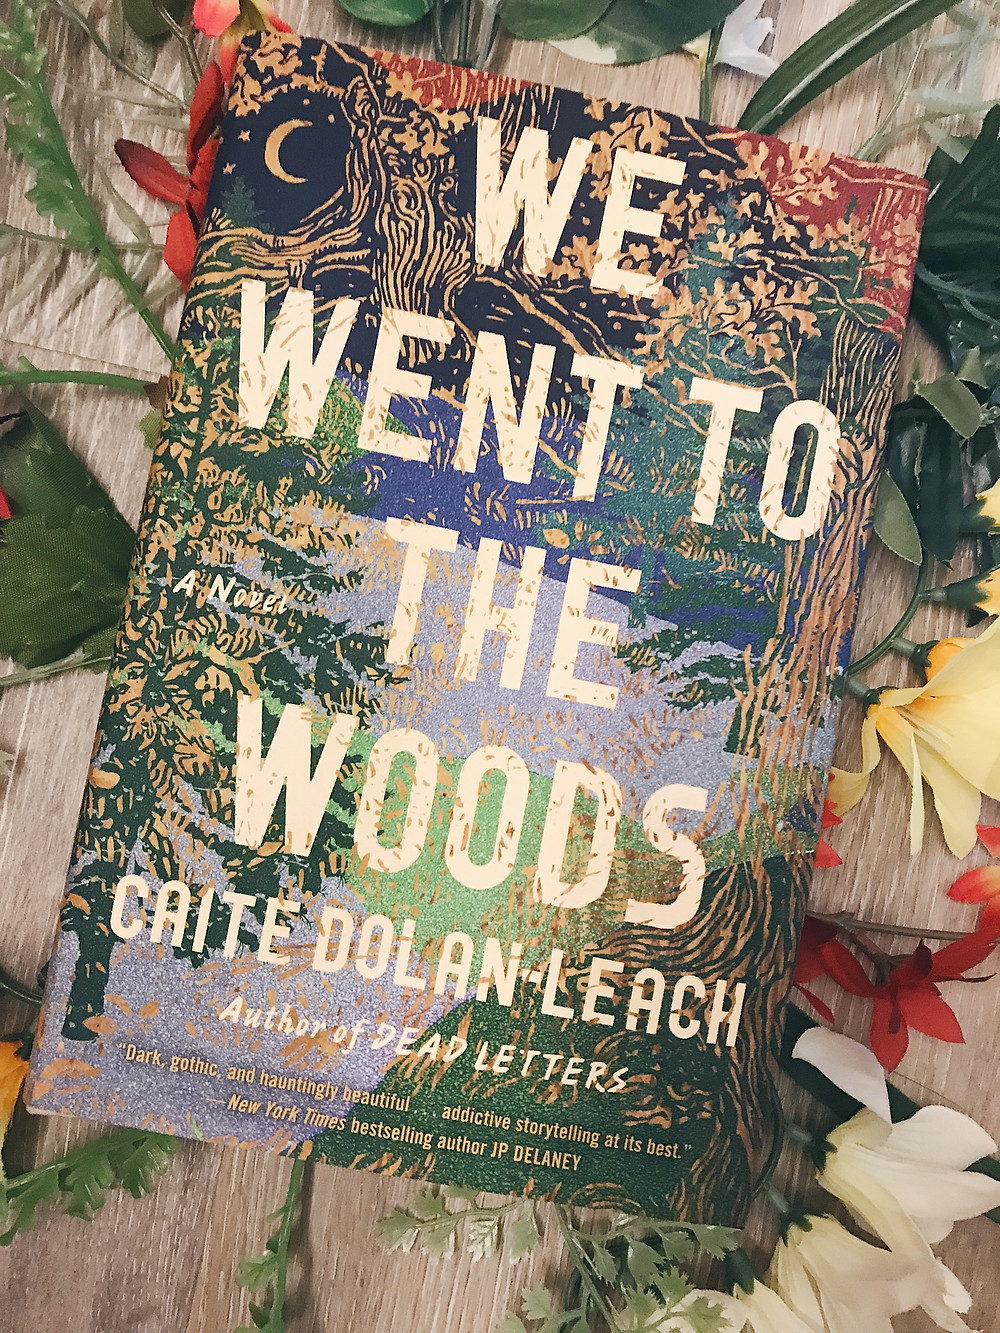 We Went to the Woods by Caite Dolan-Leach